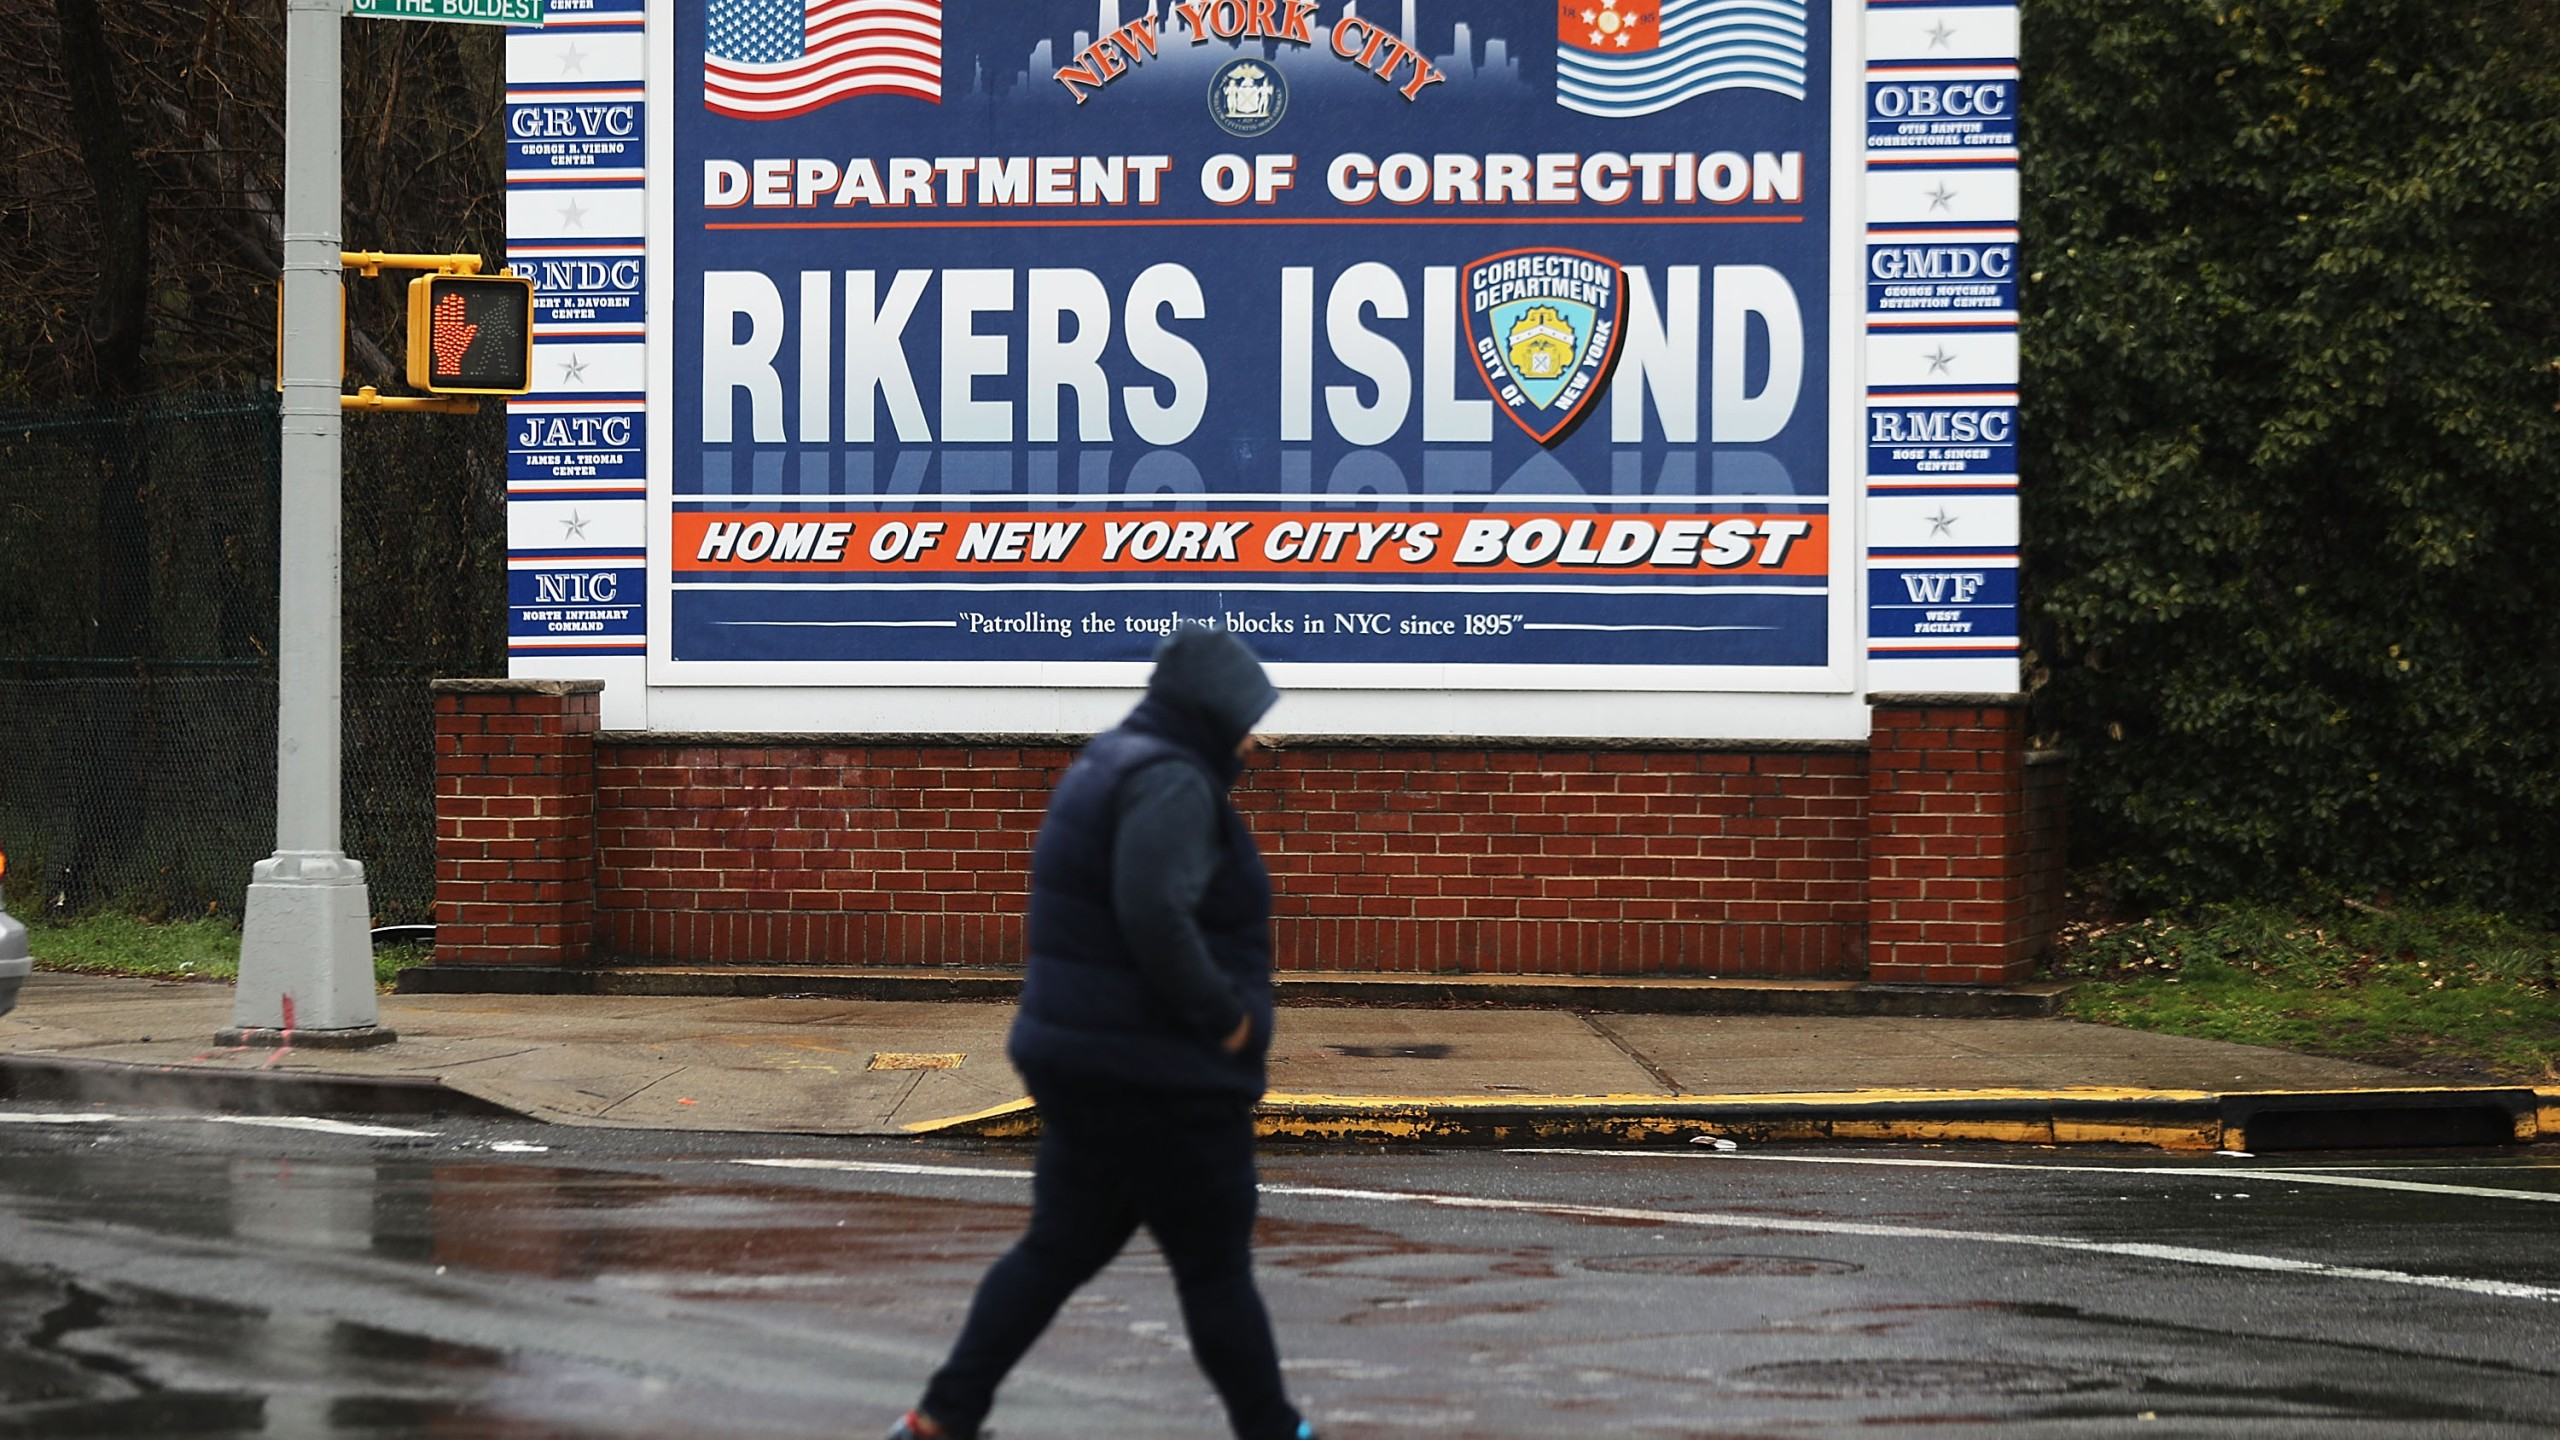 A woman walks by a sign at the entrance to Rikers Island on March 31, 2017 in New York City. (Credit: Spencer Platt/Getty Images)